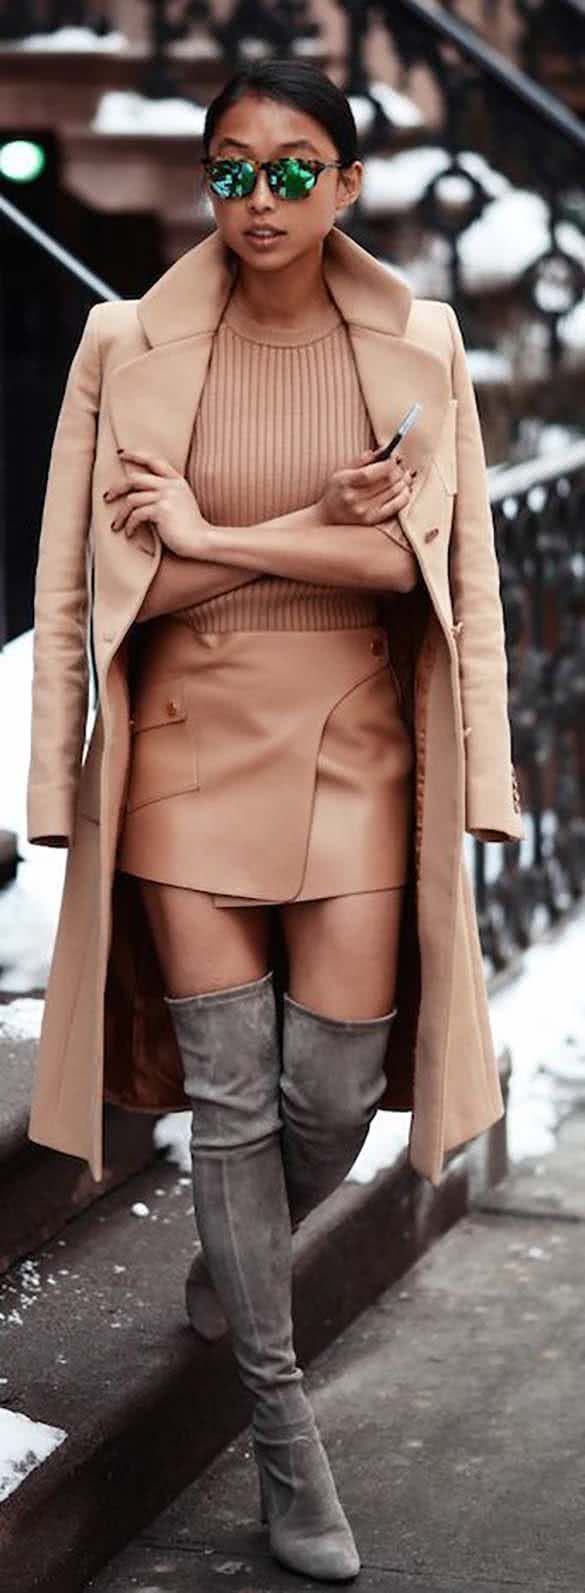 50 Degree Weather Outfit 30 Ideas